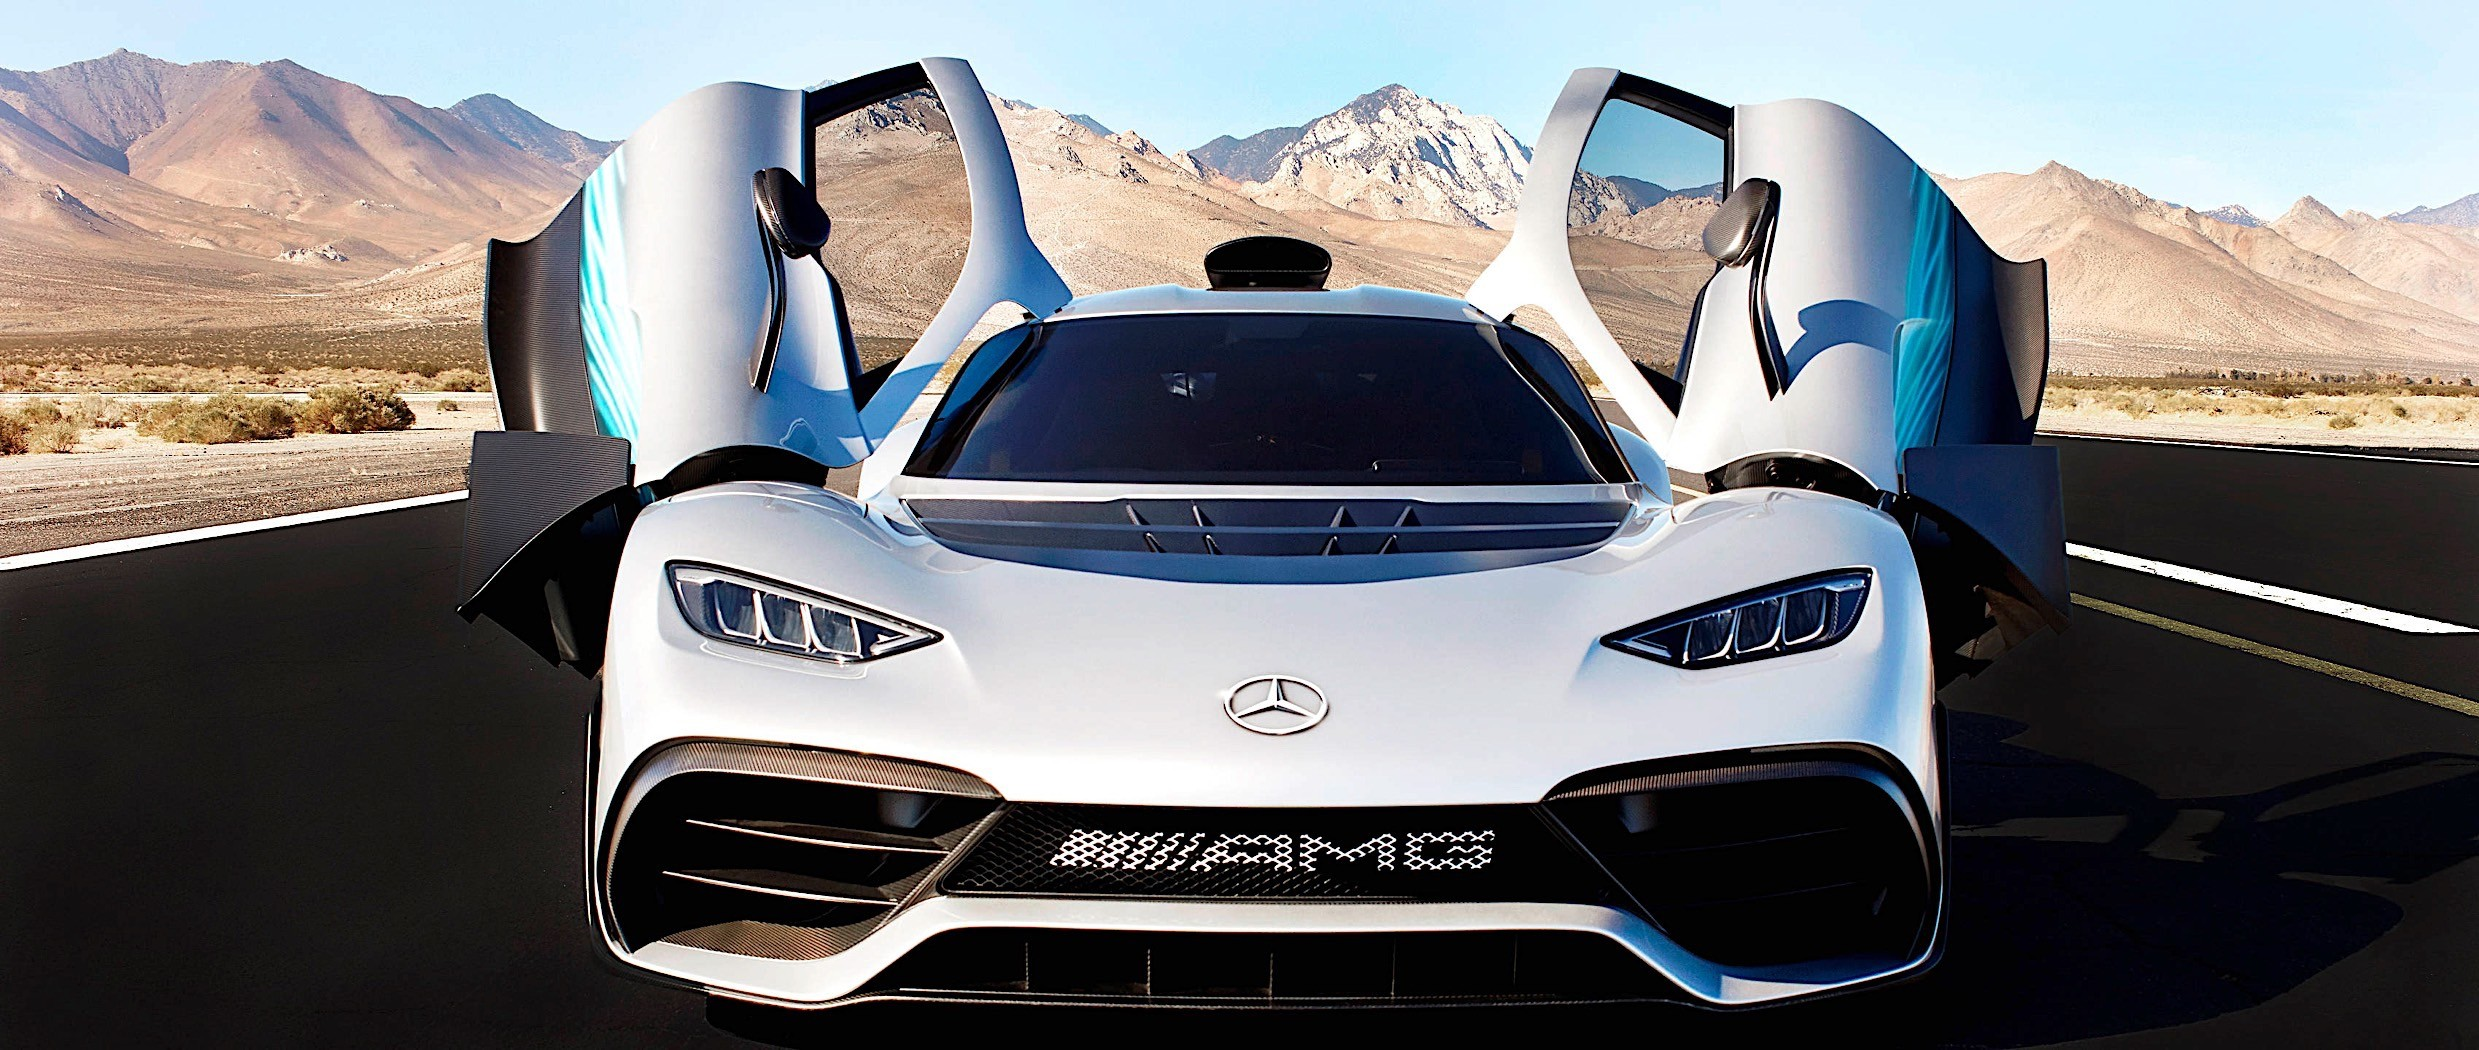 Project Cars Hd Wallpaper Mercedes Amg Project One Shines In New Wallpaper Gallery